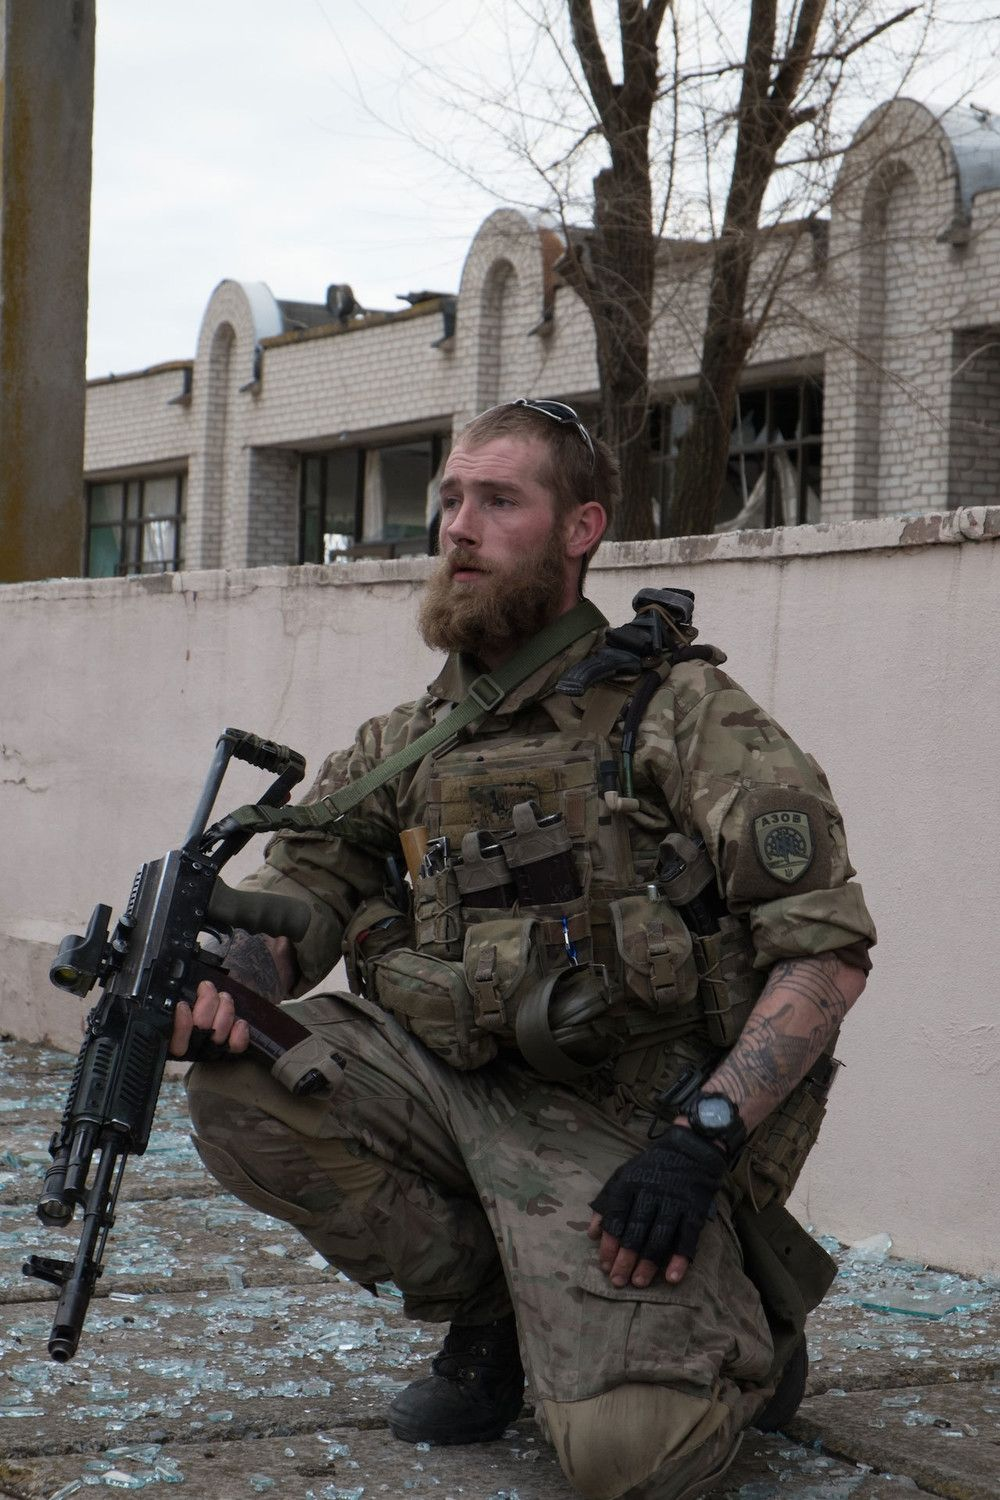 Fighters Europe Com: Meeting The European Fighters At War In Ukraine